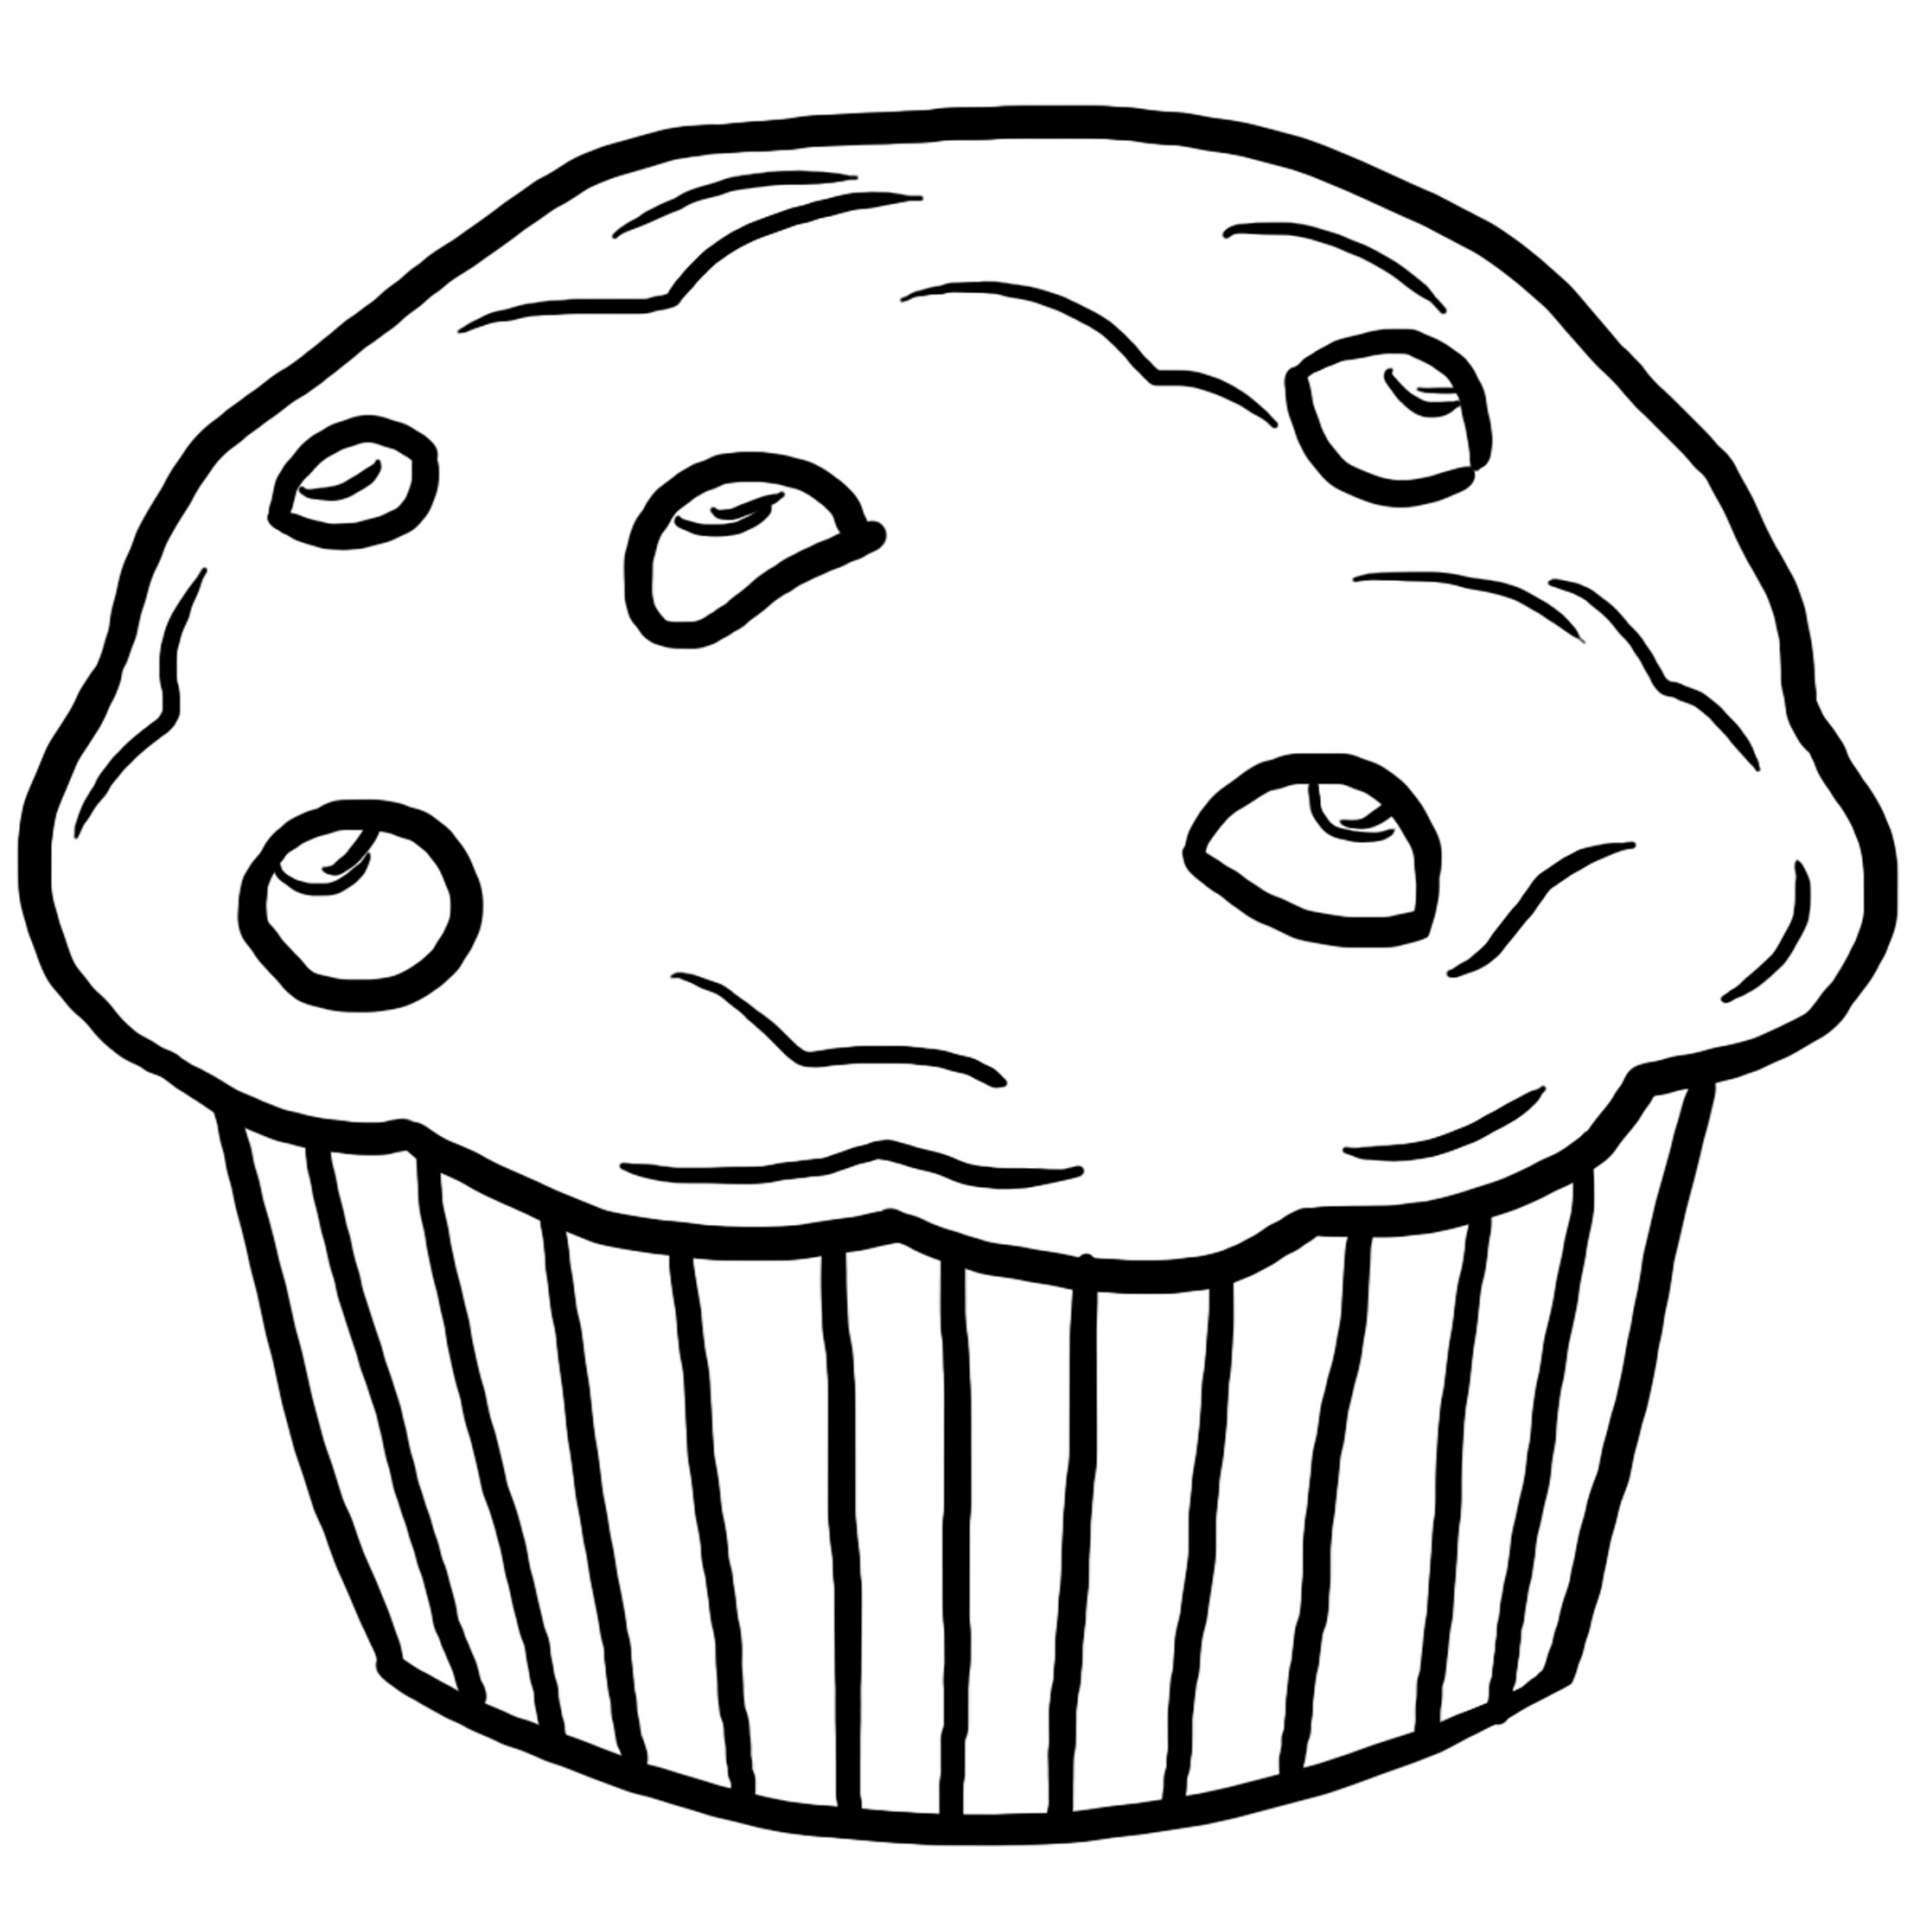 muffin coloring sheet coloring pages of muffins learning how to read muffin sheet coloring